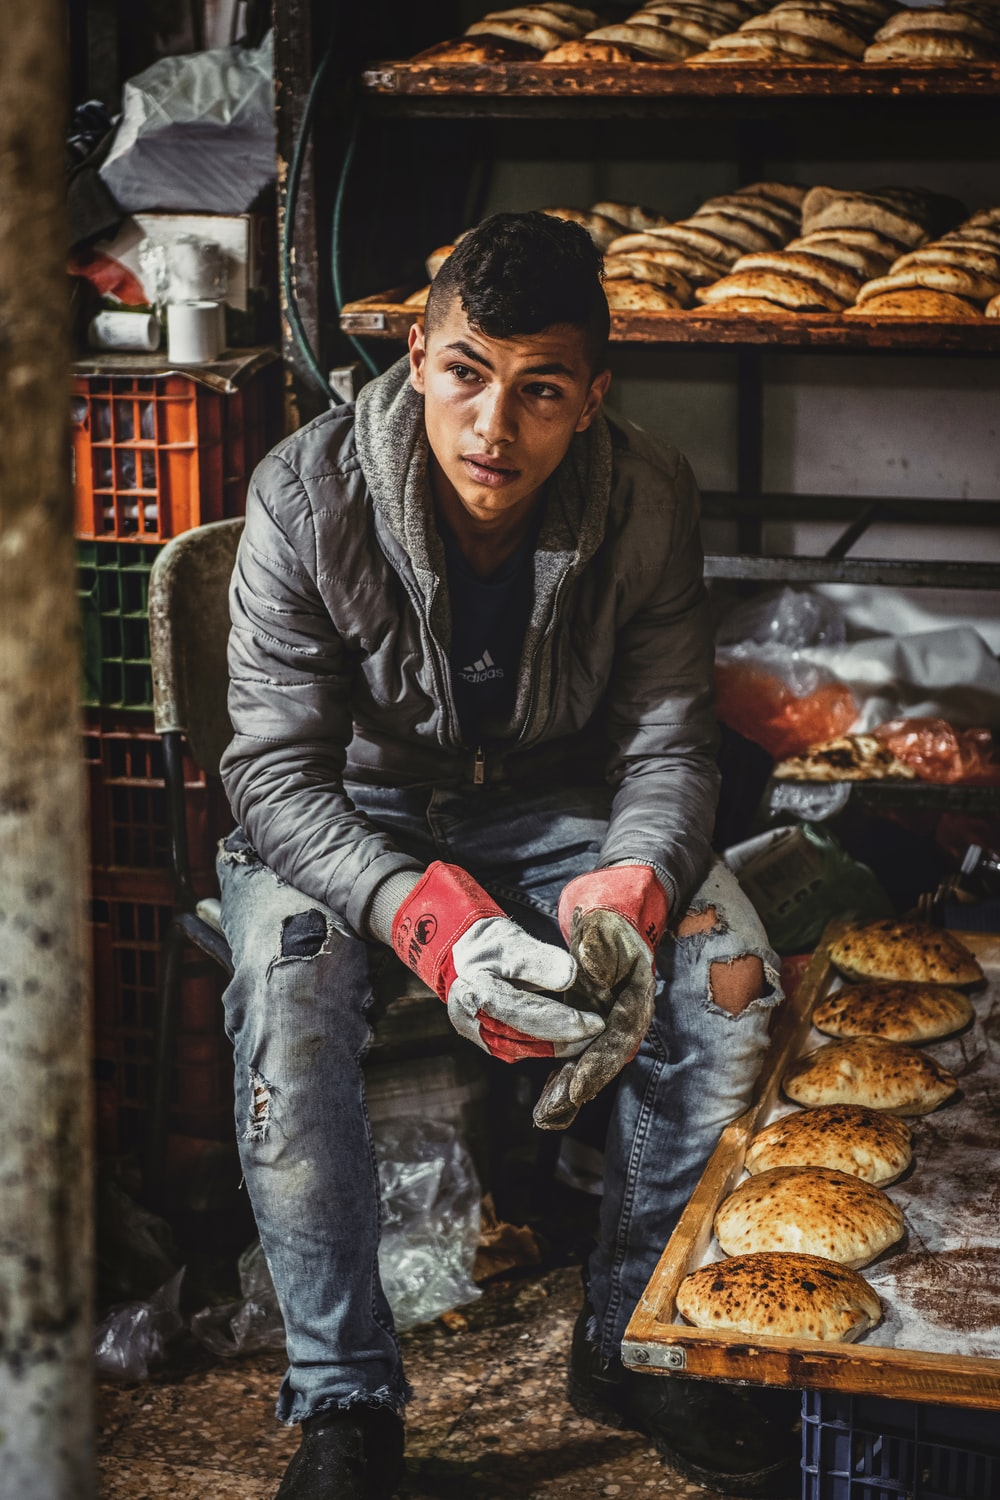 man sitting on chair near baked breads